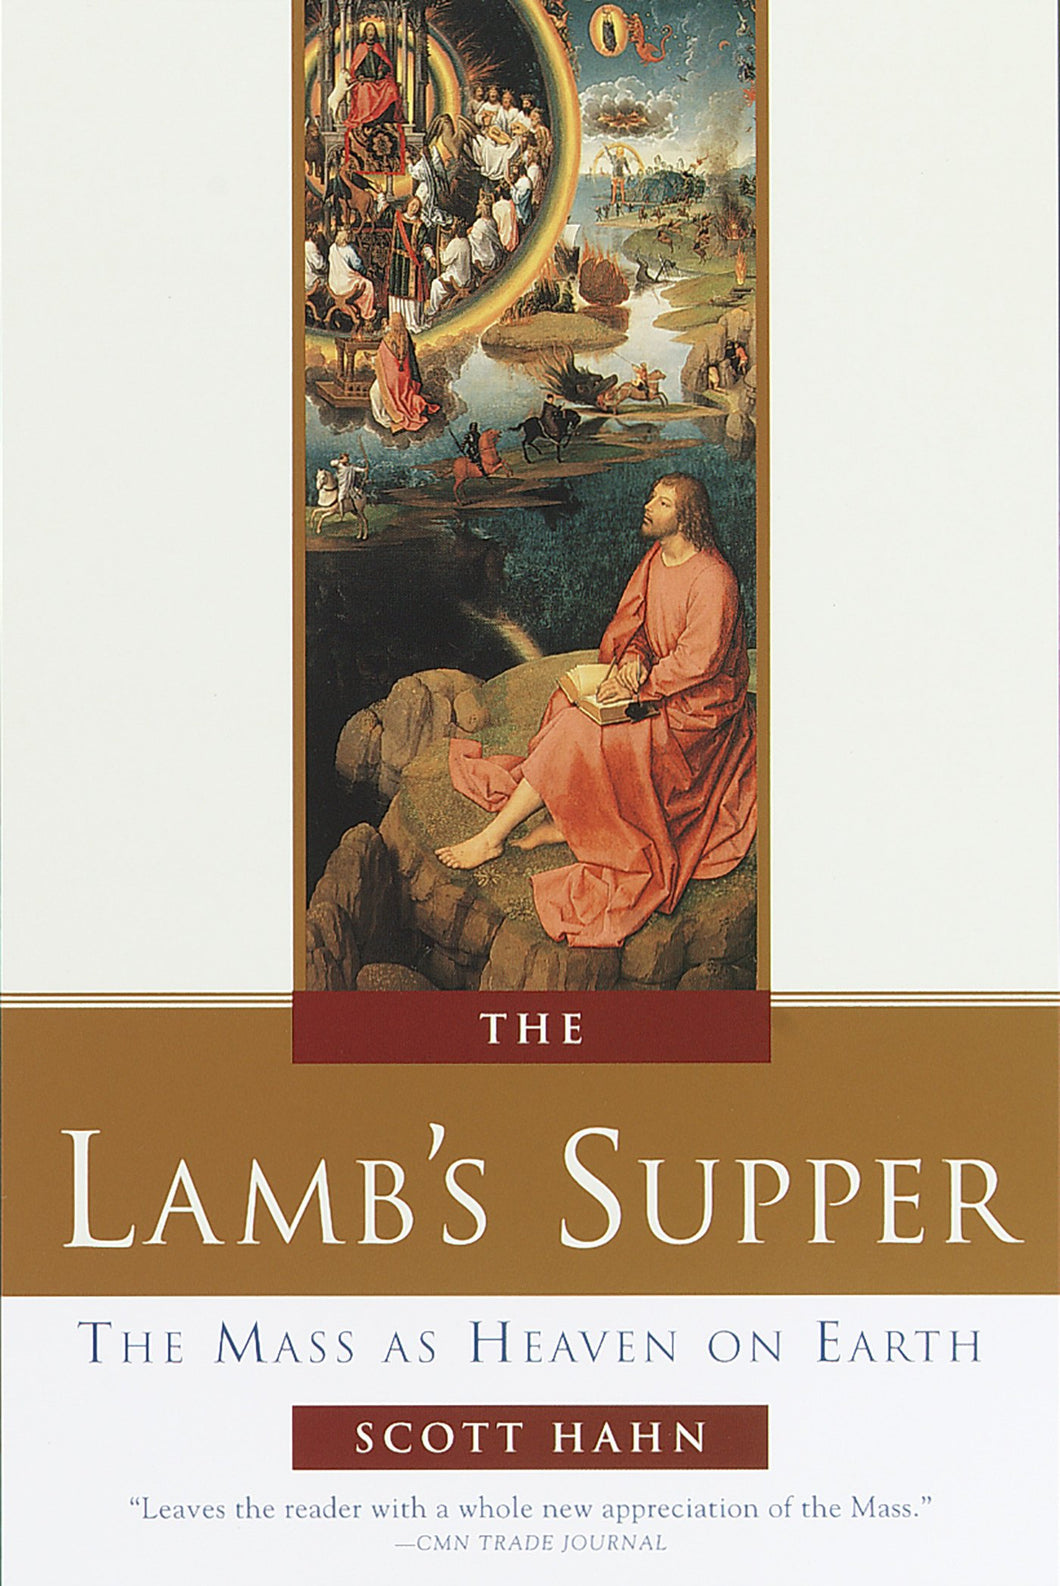 The Lamb's Supper: Mass as Heaven on Earth